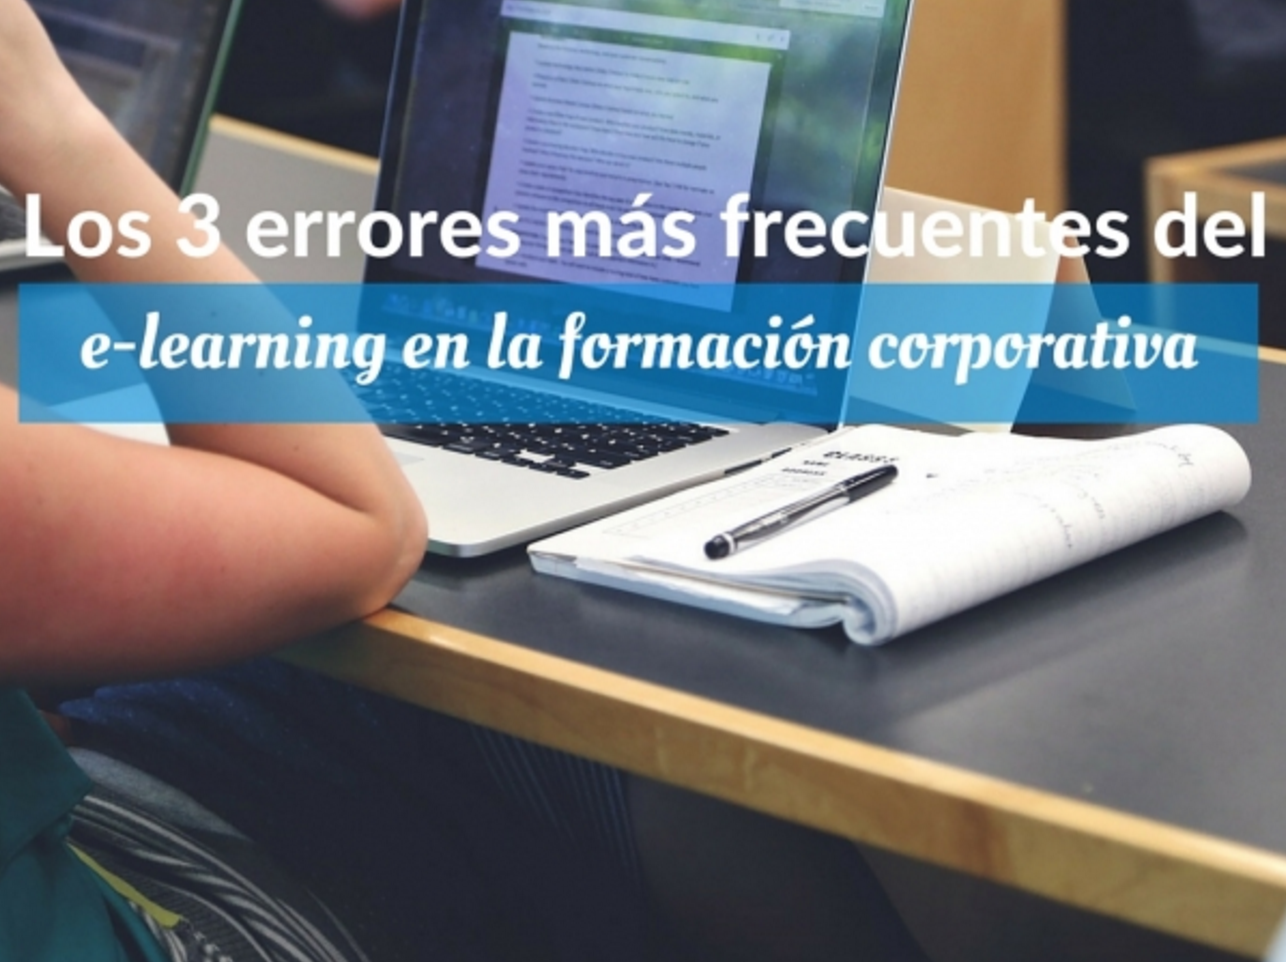 mhp_ip-zone_com/files/img//mhp-blog-los-3-errores-mas-frecuentes-del-e-learning